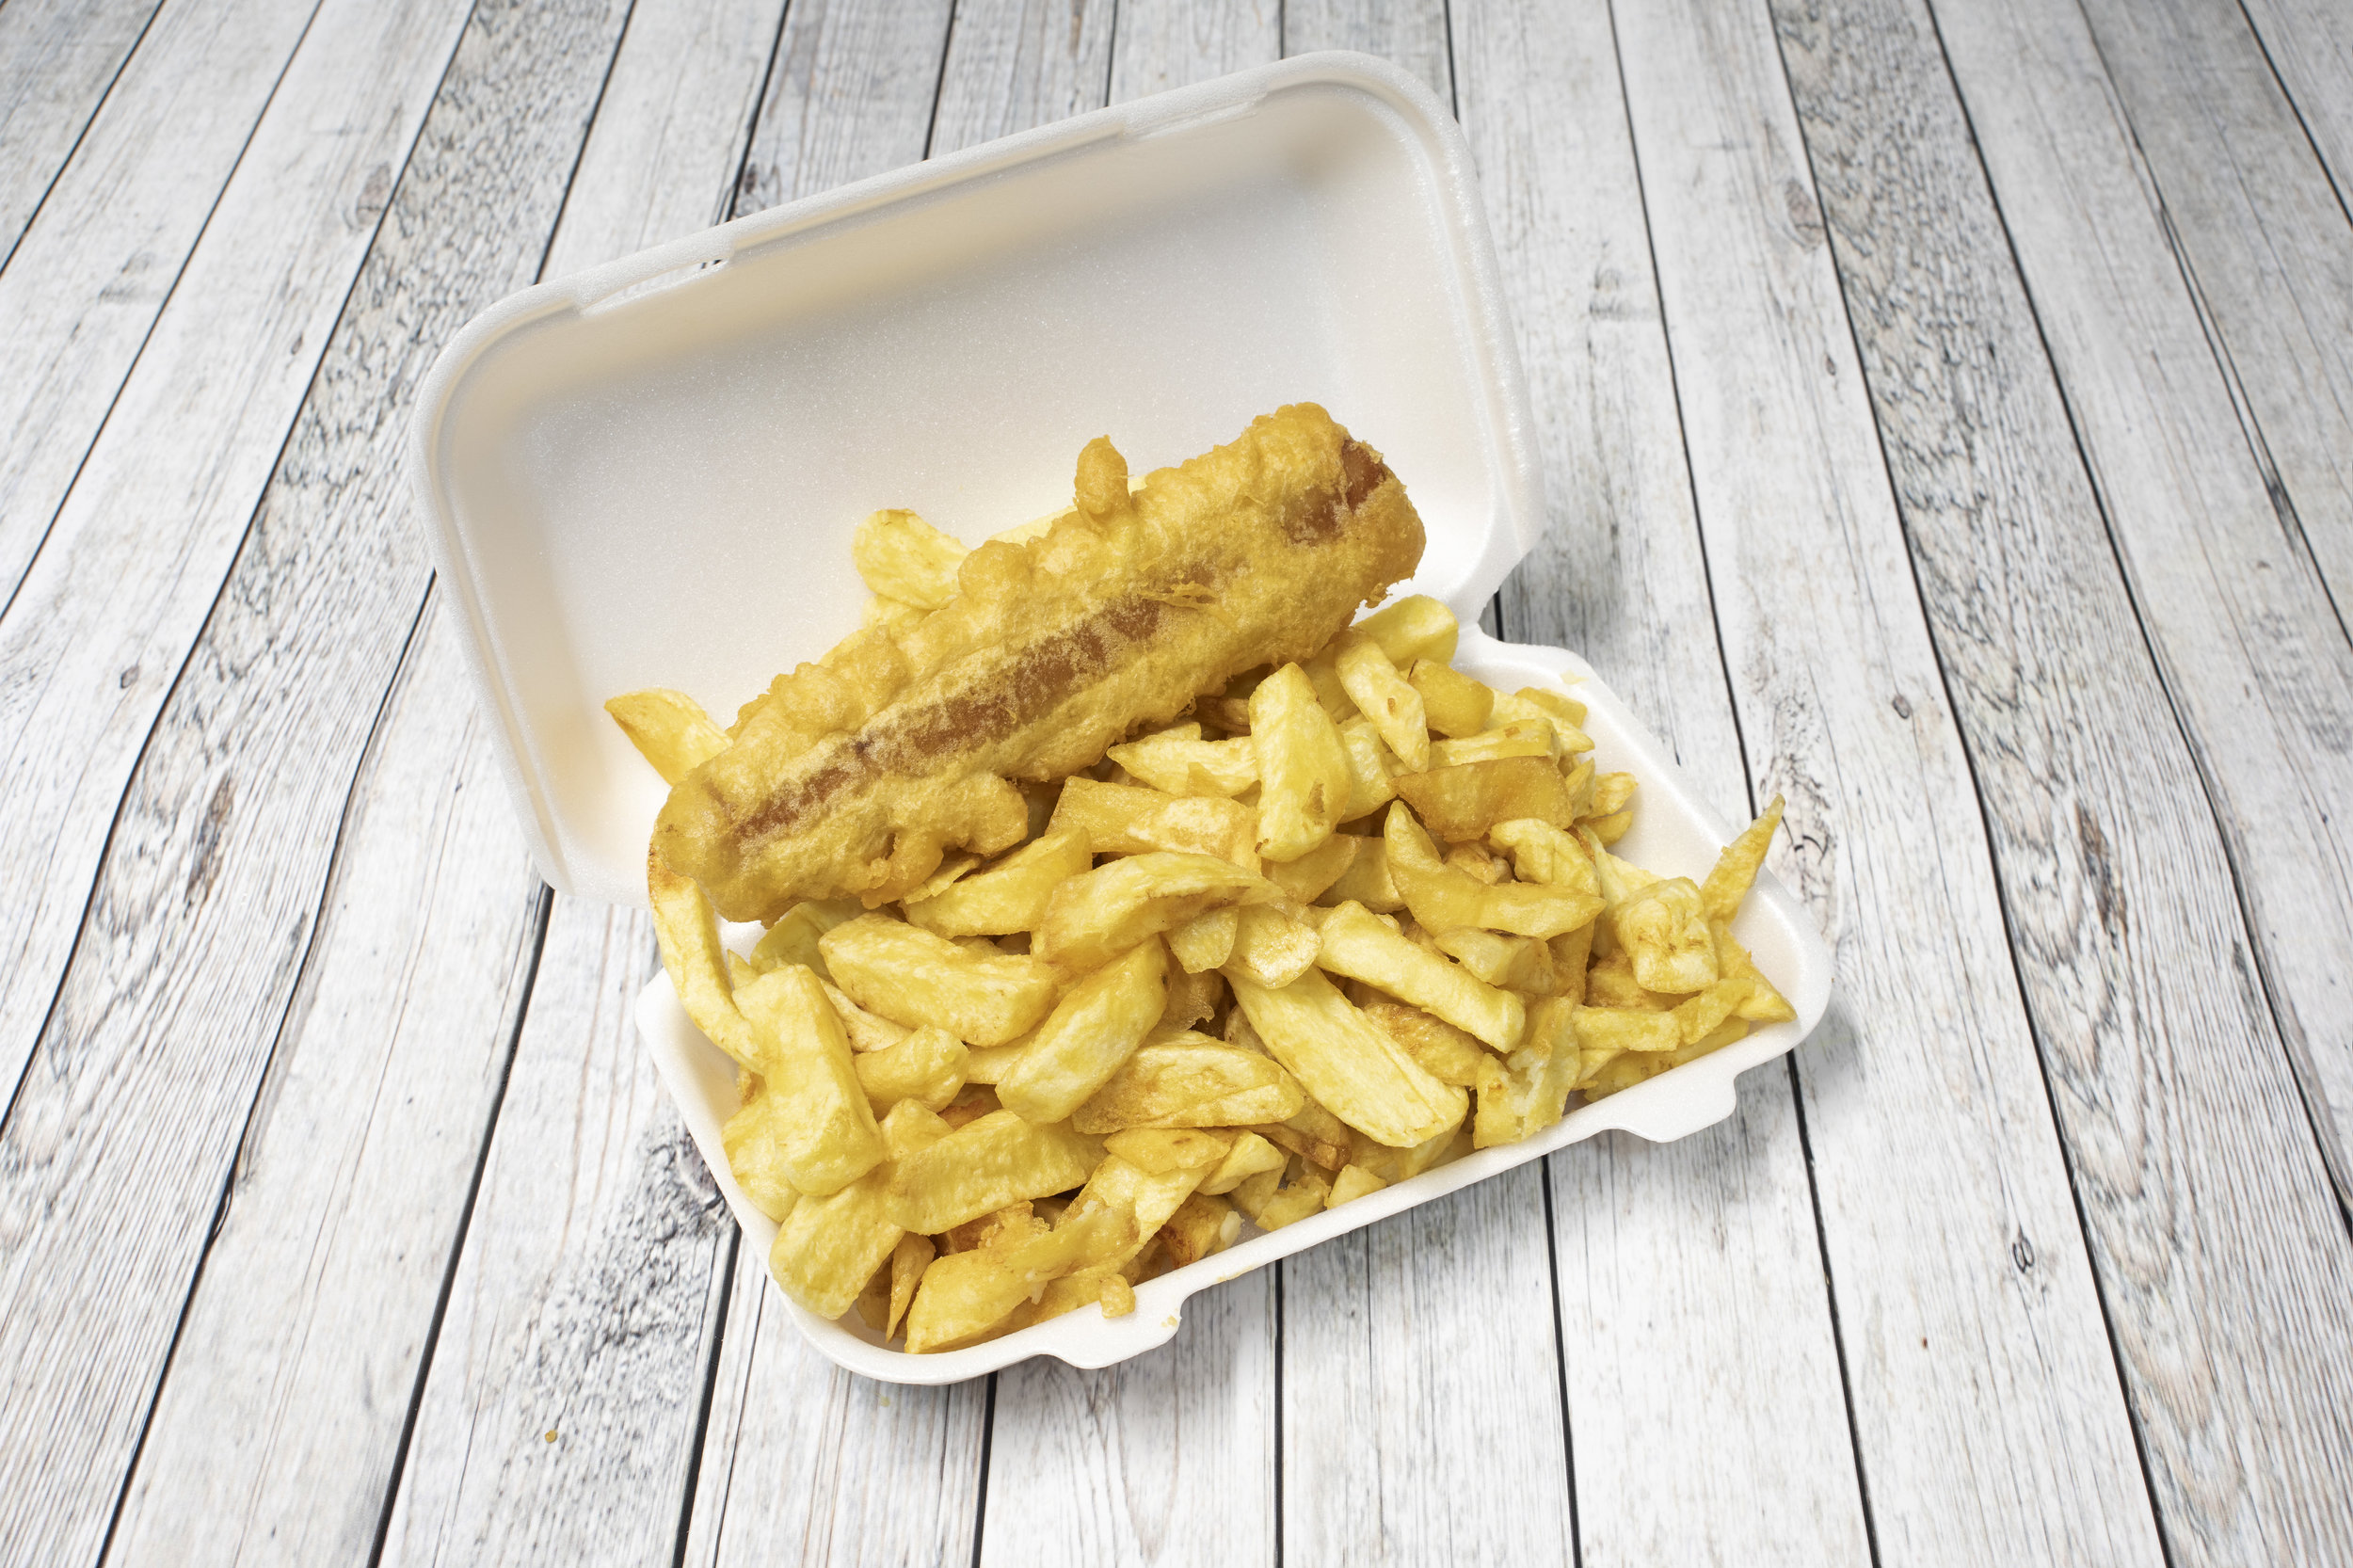 sausage-and-chips-takeaway.jpg